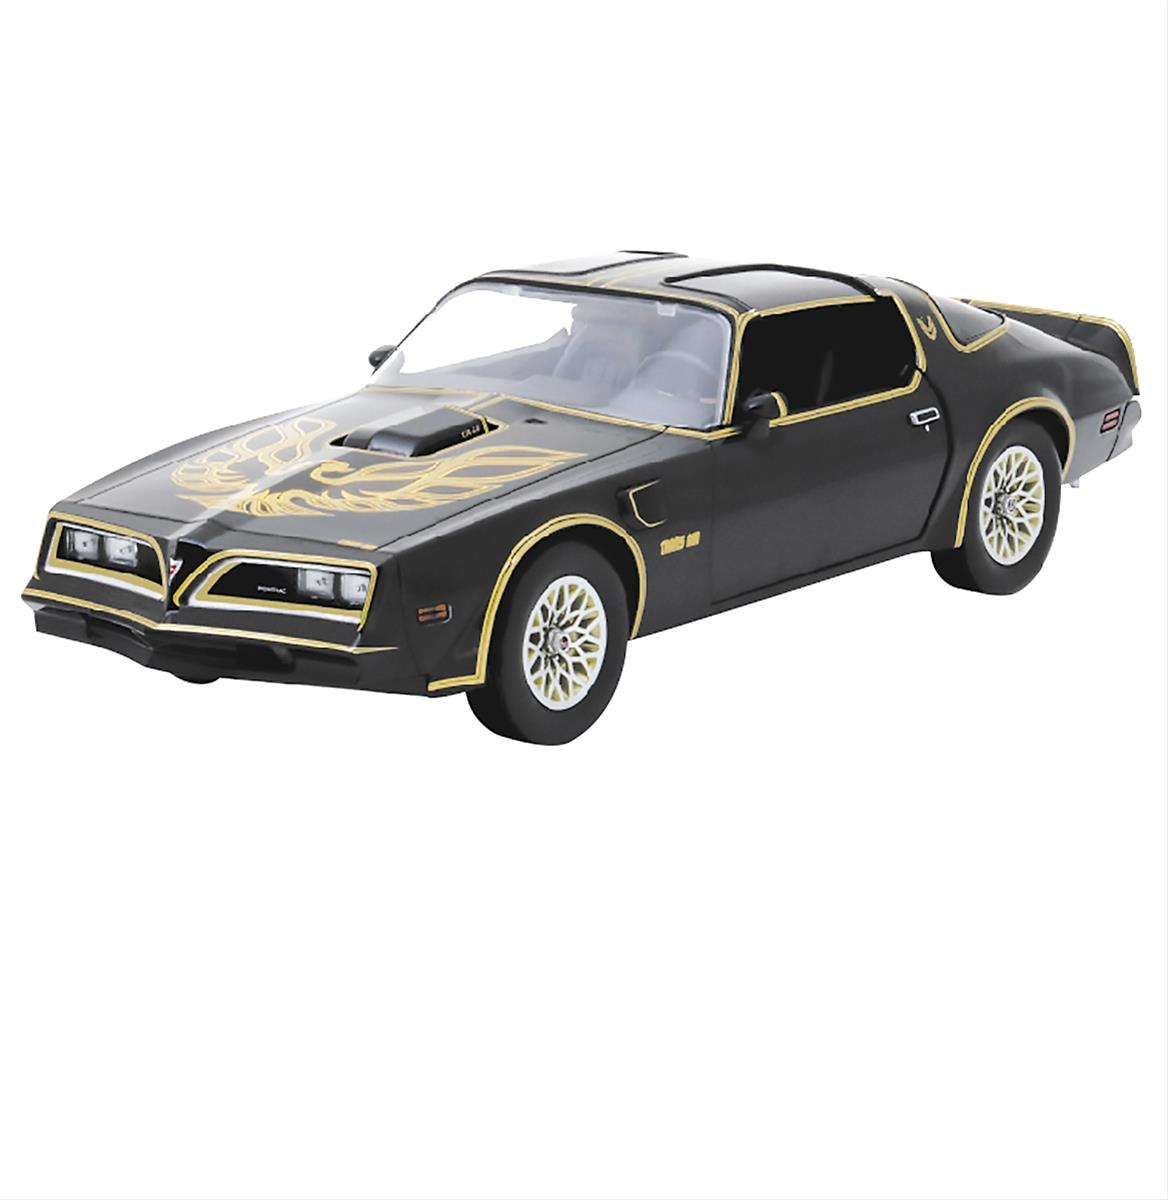 118 Scale Smokey And The Bandit 1977 Pontiac Trans Am Diecast Model 1950 19025 Free Shipping On Orders Over 99 At Summit Racing